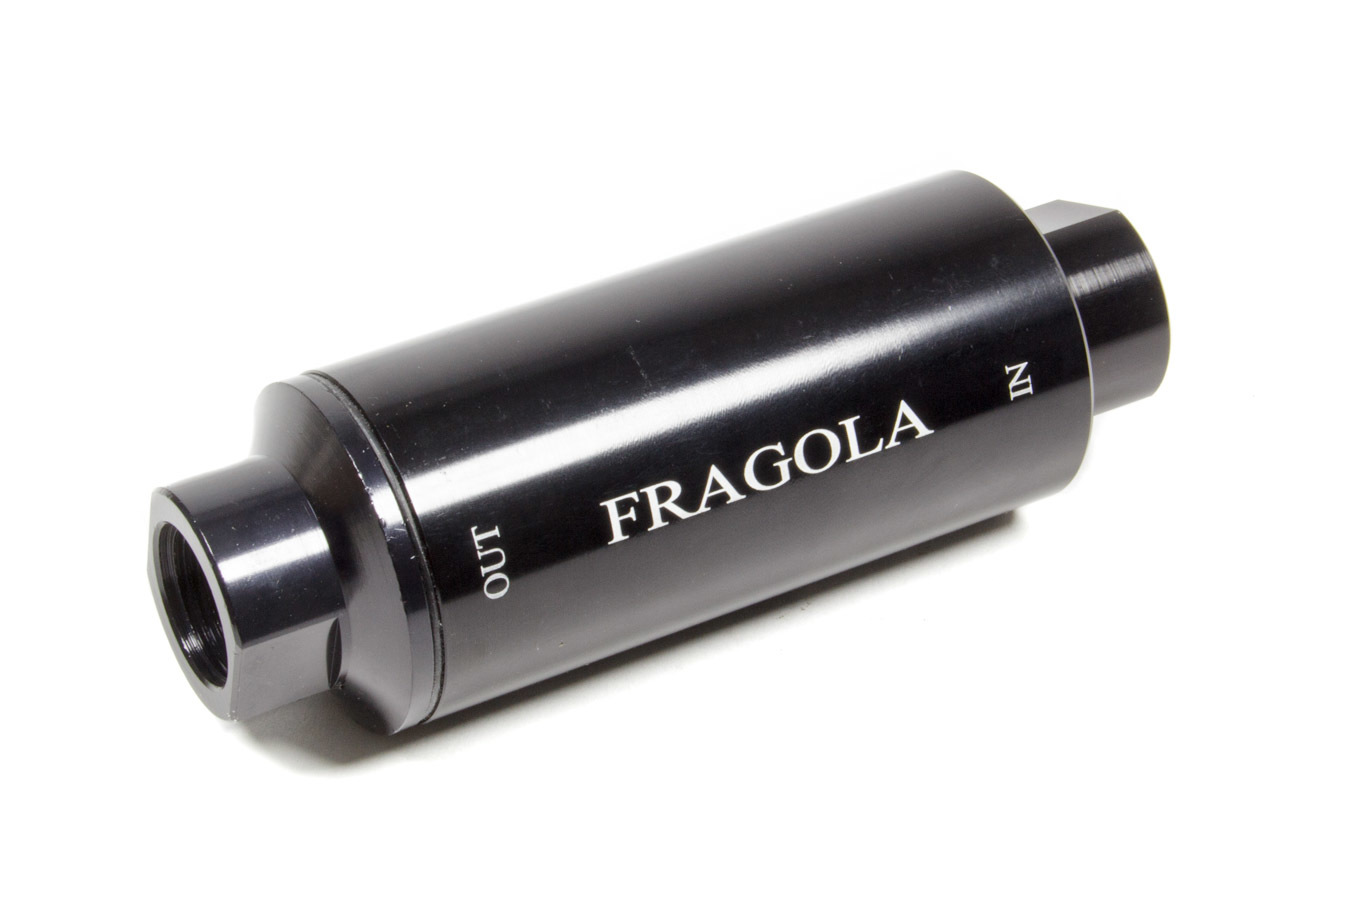 Fragola 960002-BL Fuel Filter, In-Line, 10 Micron, Paper Element, 10 AN Female Inlet, 10 AN Female Outlet, Aluminum, Black Anodize, Each